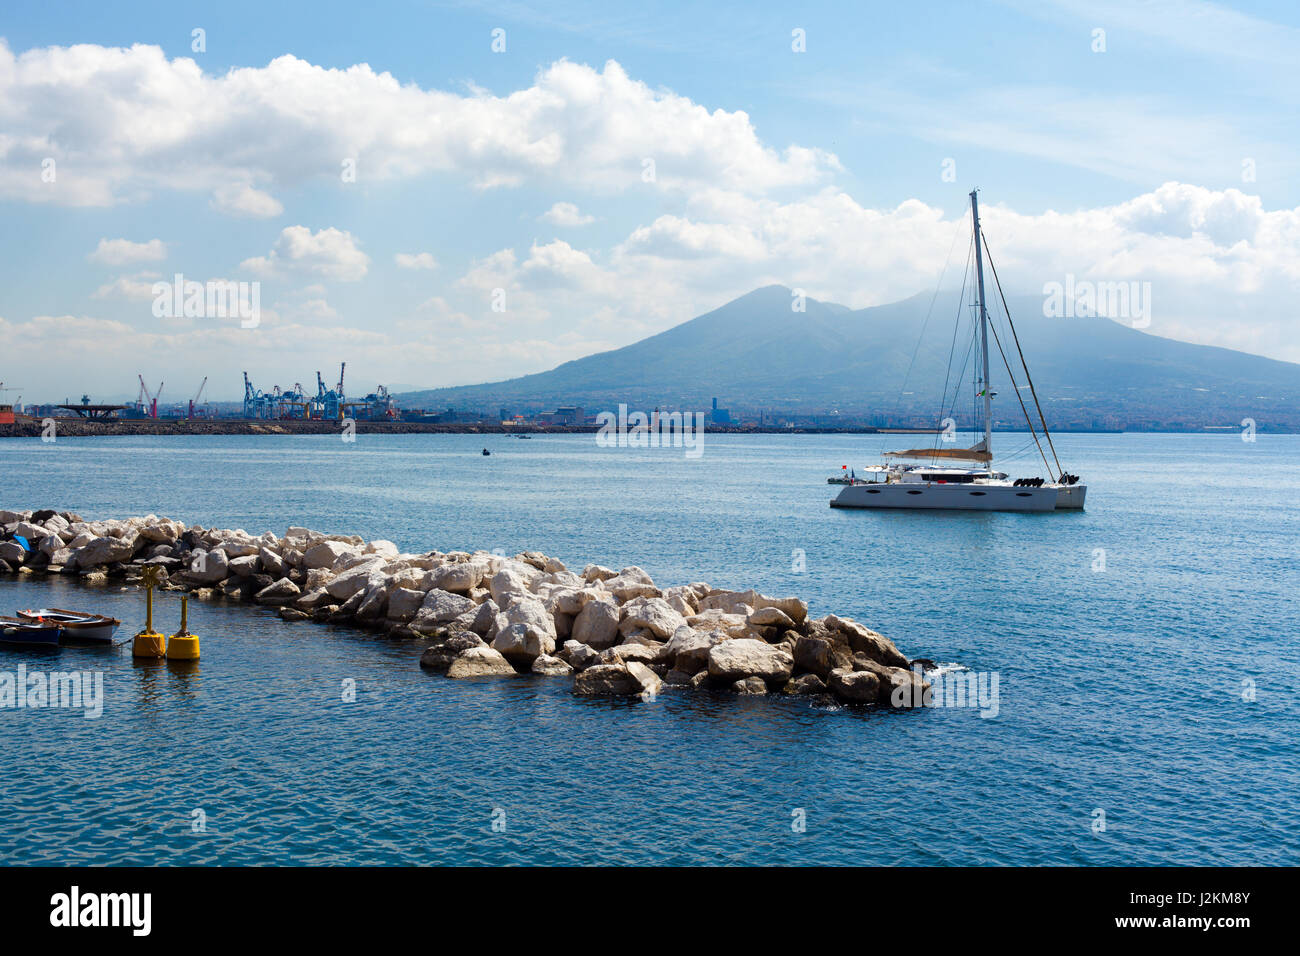 Vesuvius Mountain on Gulf of Naples with Boats - Stock Image